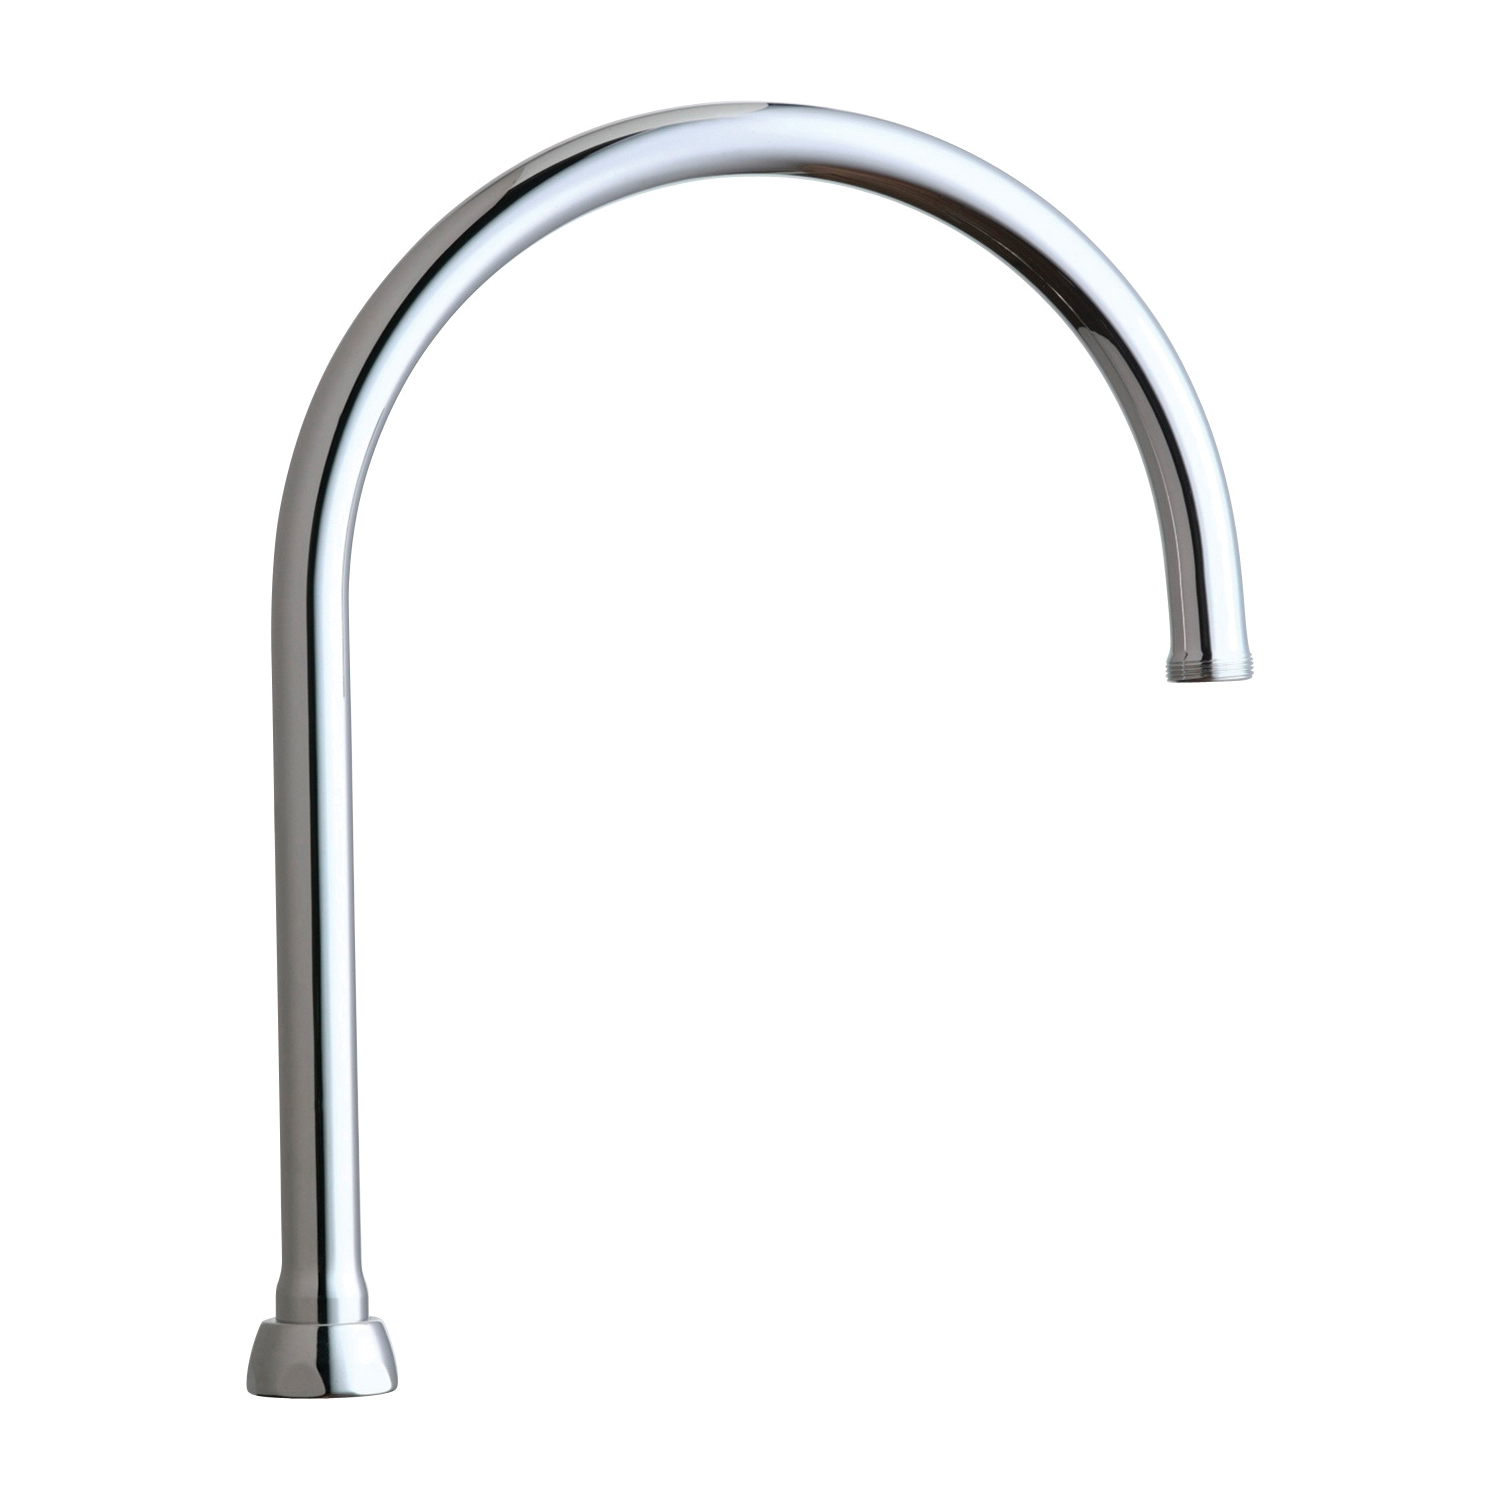 Chicago Faucet® GN8AJKABCP Rigid/Swing Gooseneck Spout, For Use With Most Faucet, Brass, Polished Chrome, Import